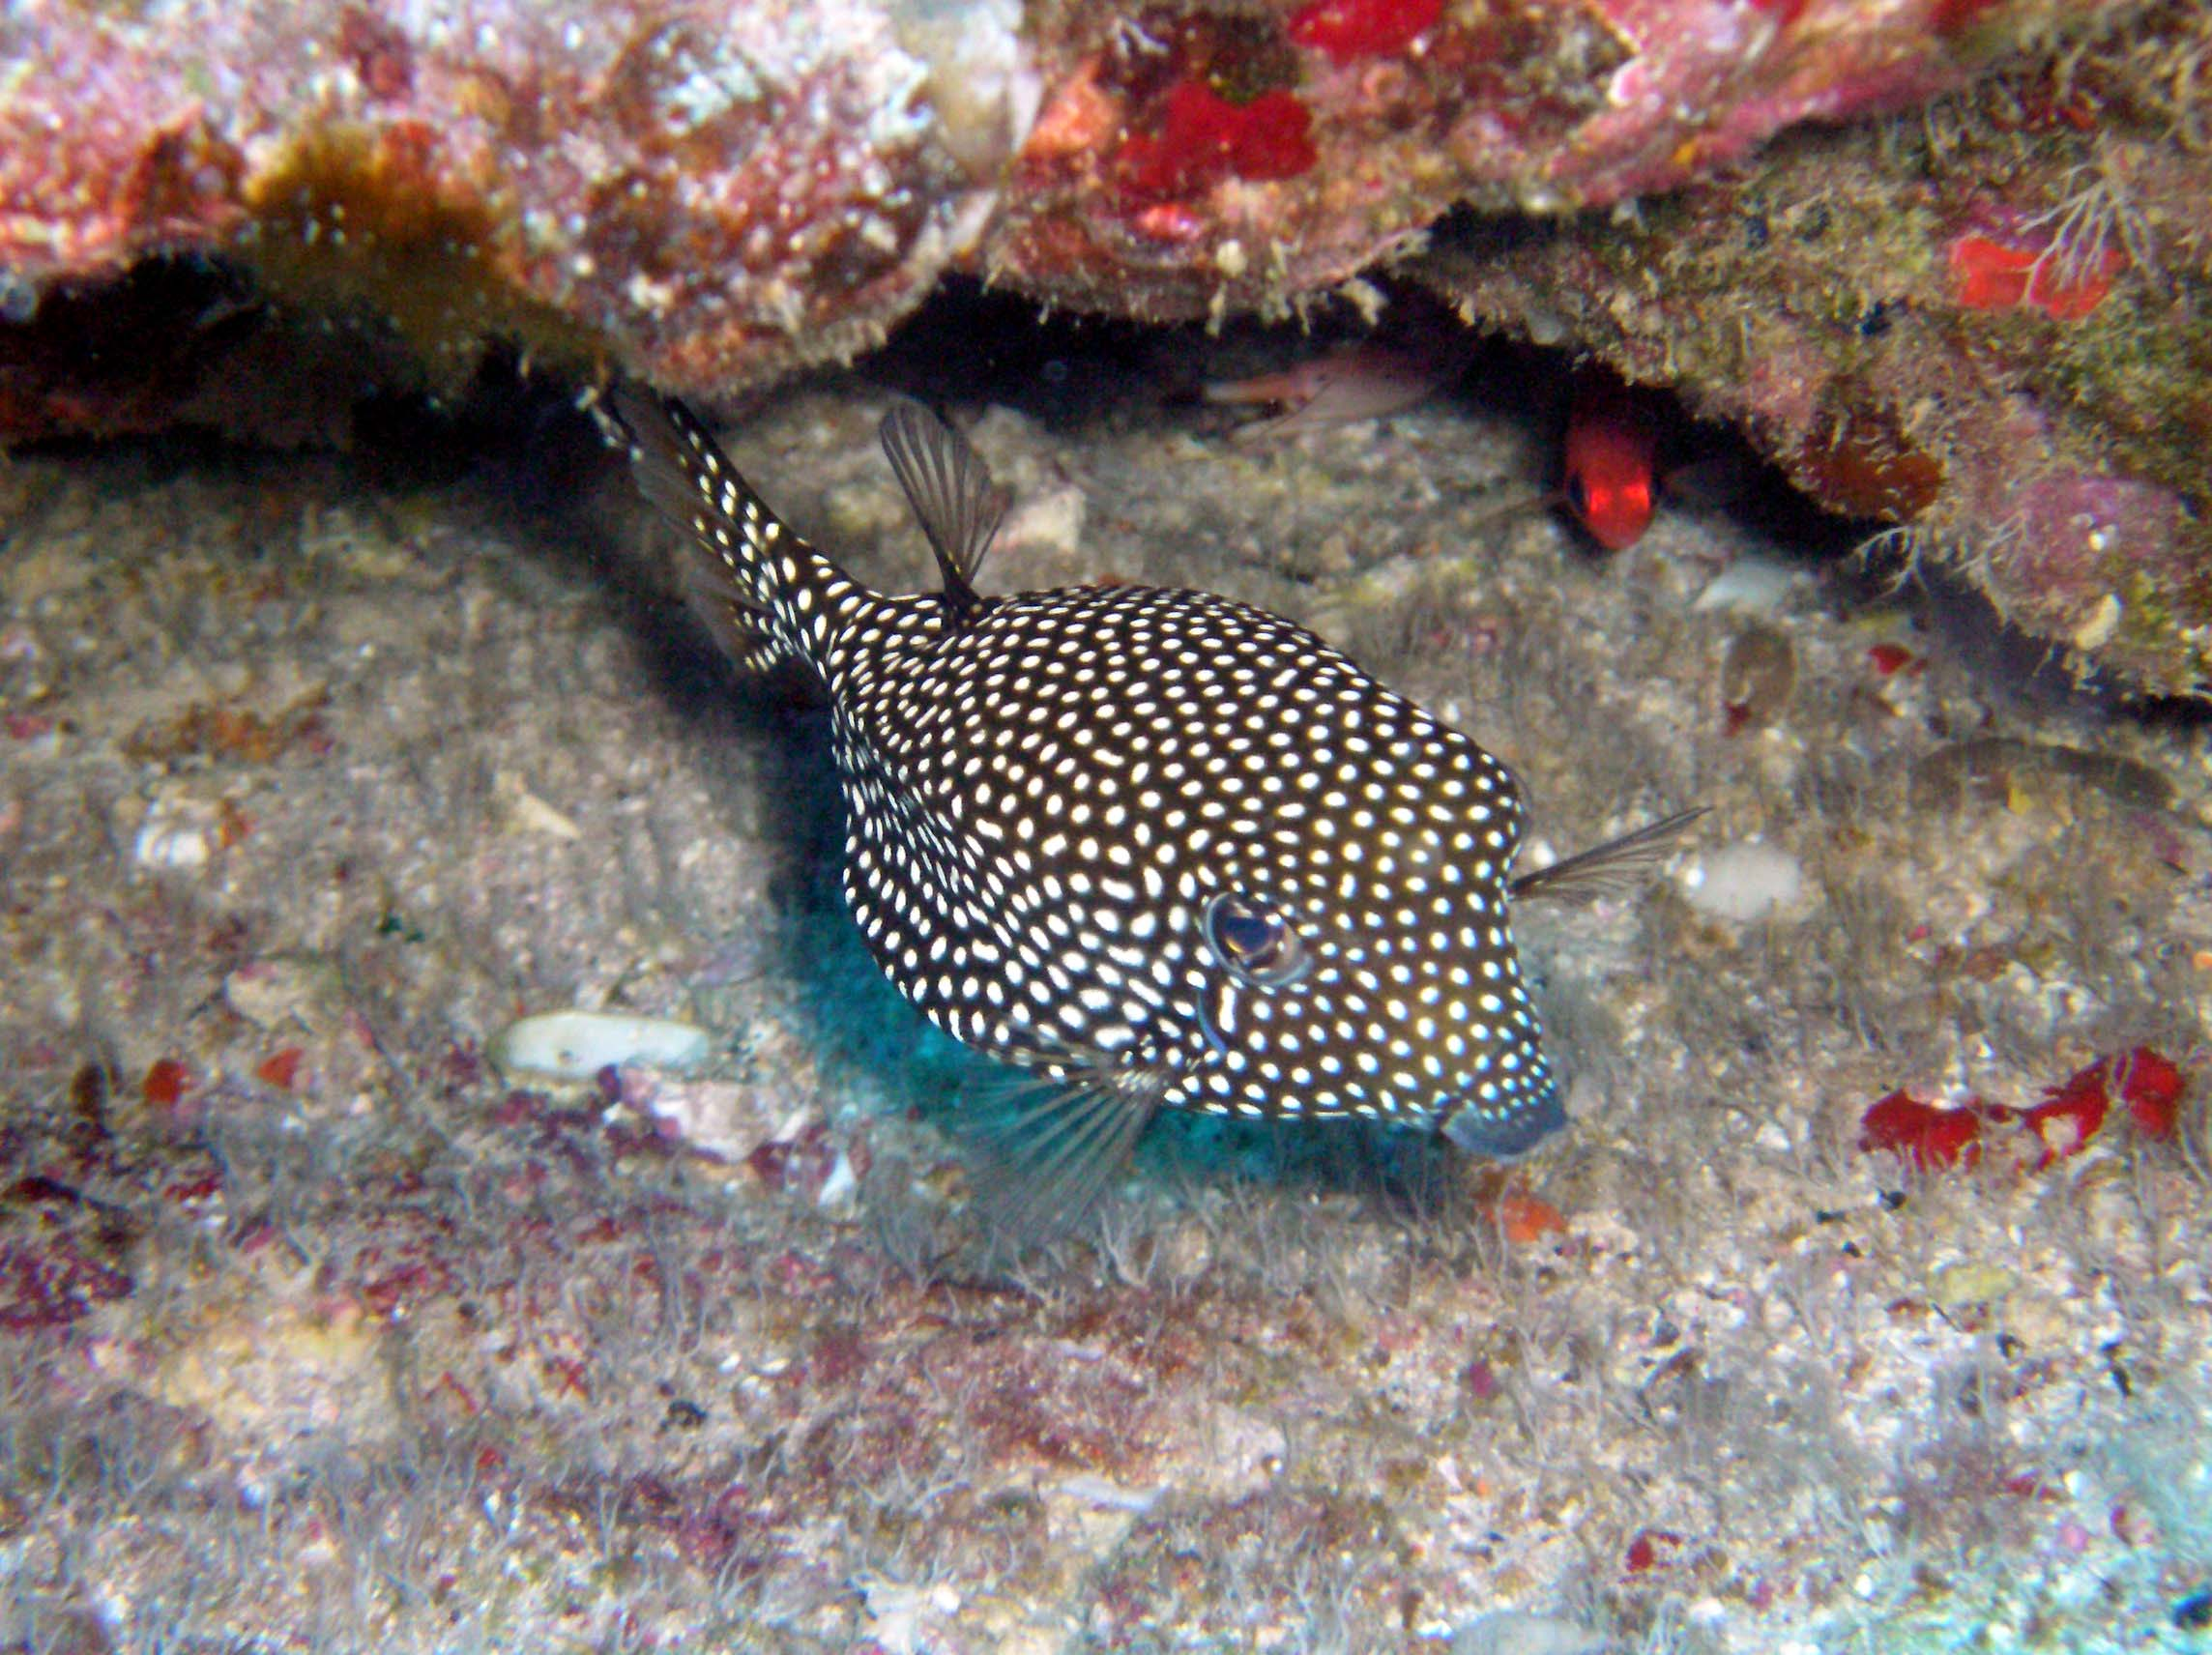 <p><strong>Fig. 4.26 (B)</strong> Spotted boxfish with specialized dorsal and anal fins for moving its boxy body</p>